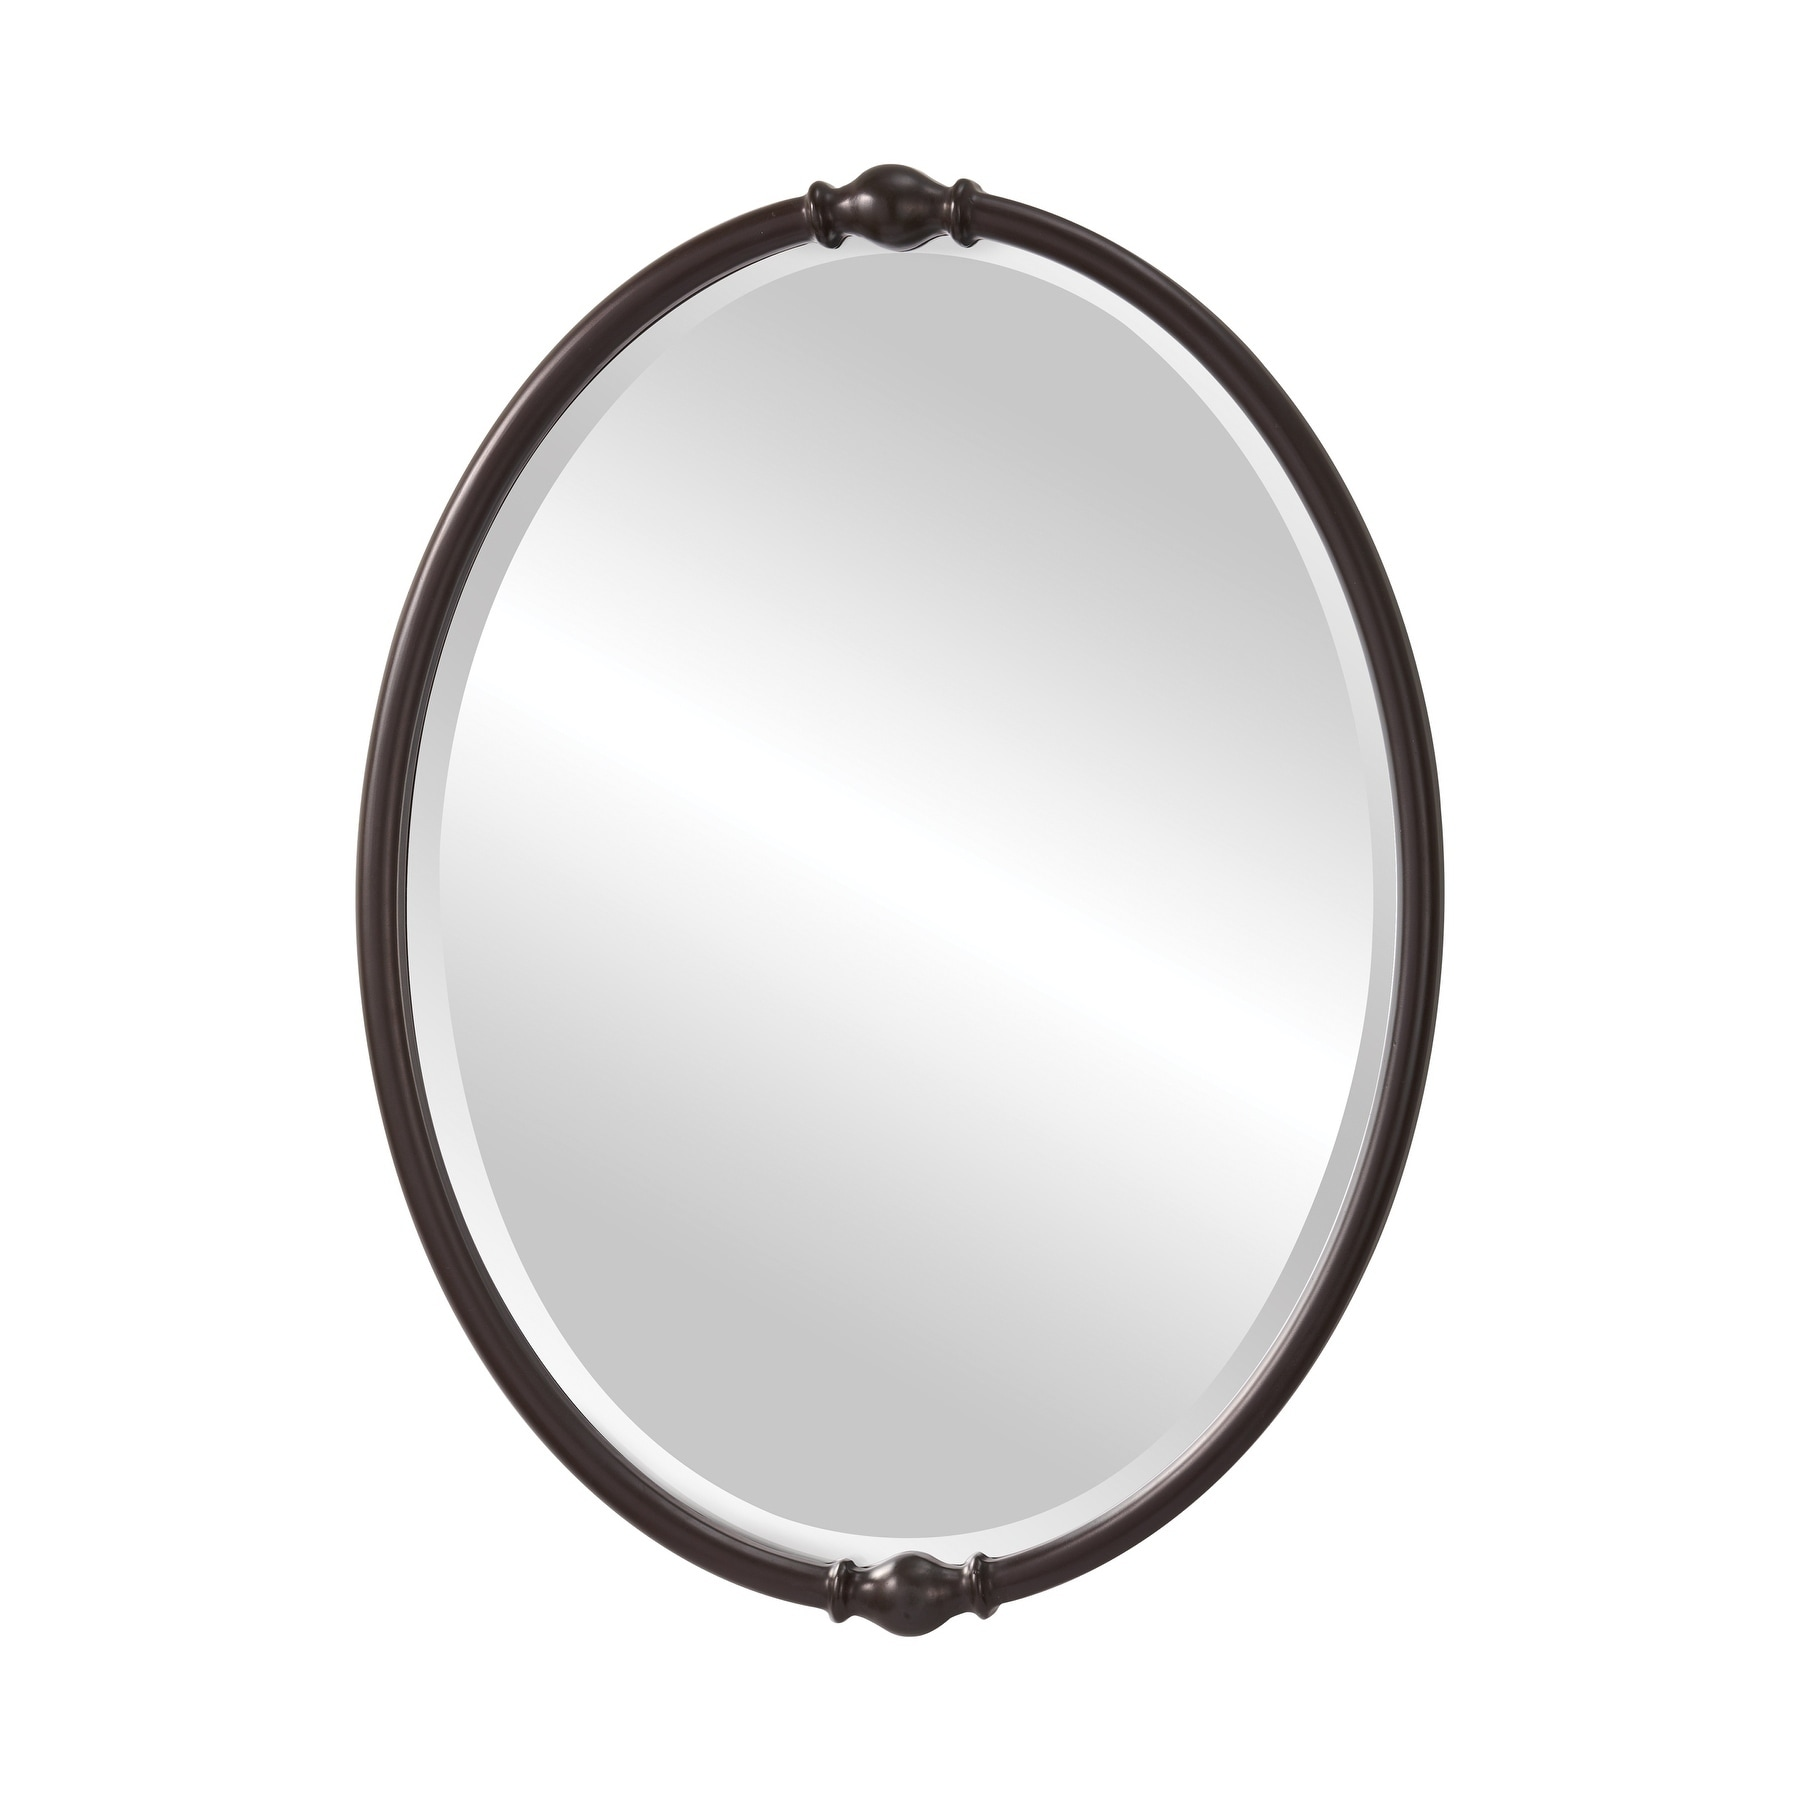 Shop For Oil Rubbed Bronze Mirror Glass Clear A N Get Free Shipping On Everything At Overstock Your Online Home Decor Outlet Store Get 5 In Rewards With Club O 9658884